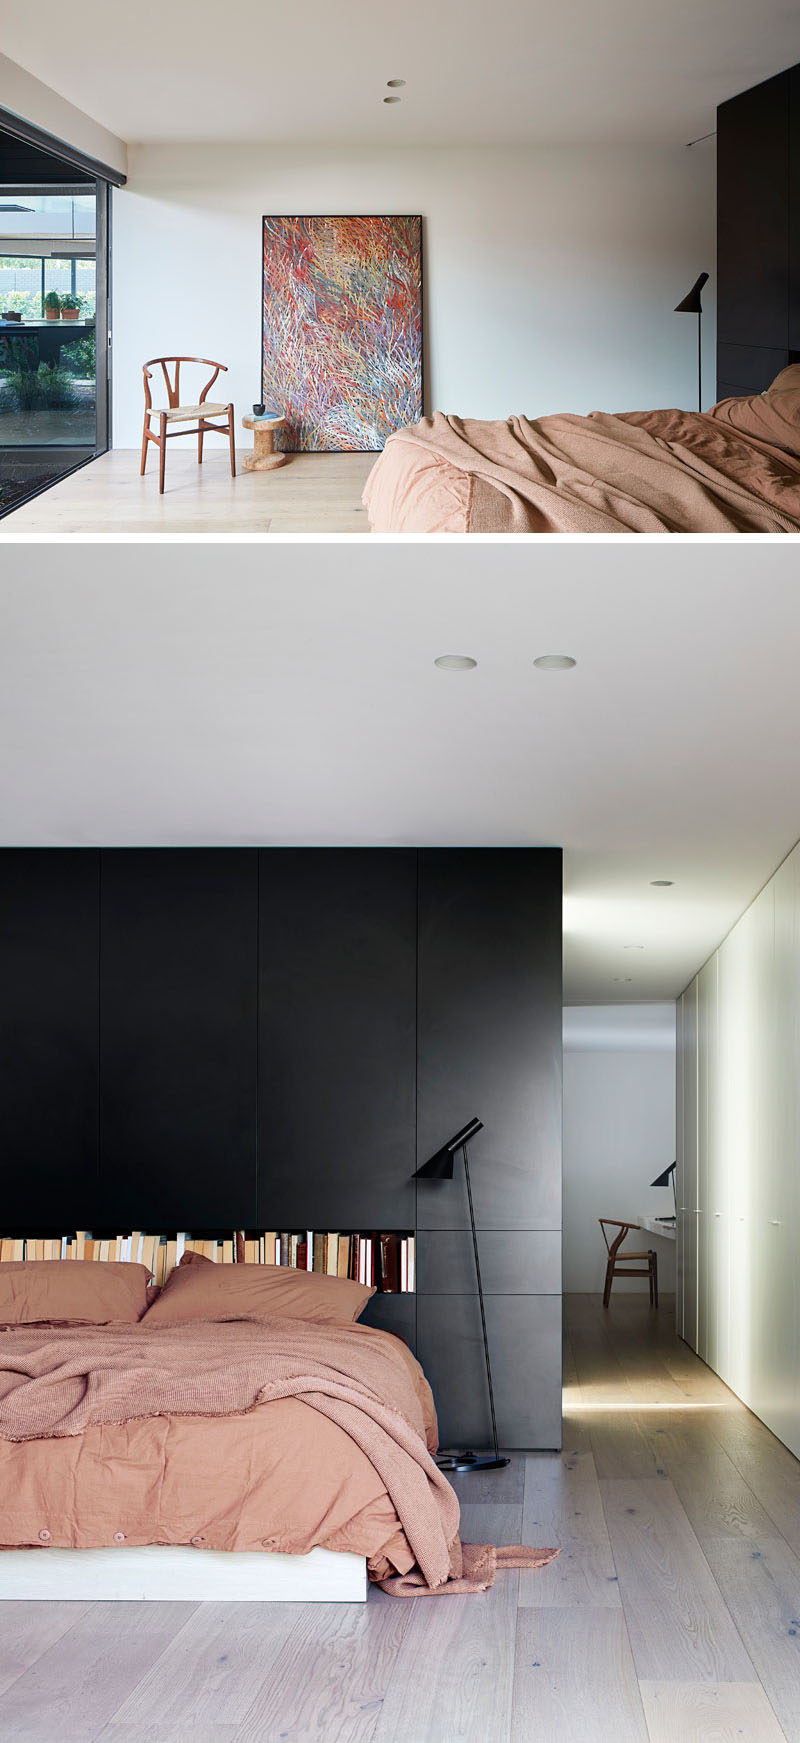 Bedroom Ideas - In this modern master bedroom, a black wall creates a bold backdrop for the bed, that also looks out to a small garden. #MasterBedroom #BedroomDesign #BlackAccentWall #BlackWall #BedroomIdeas